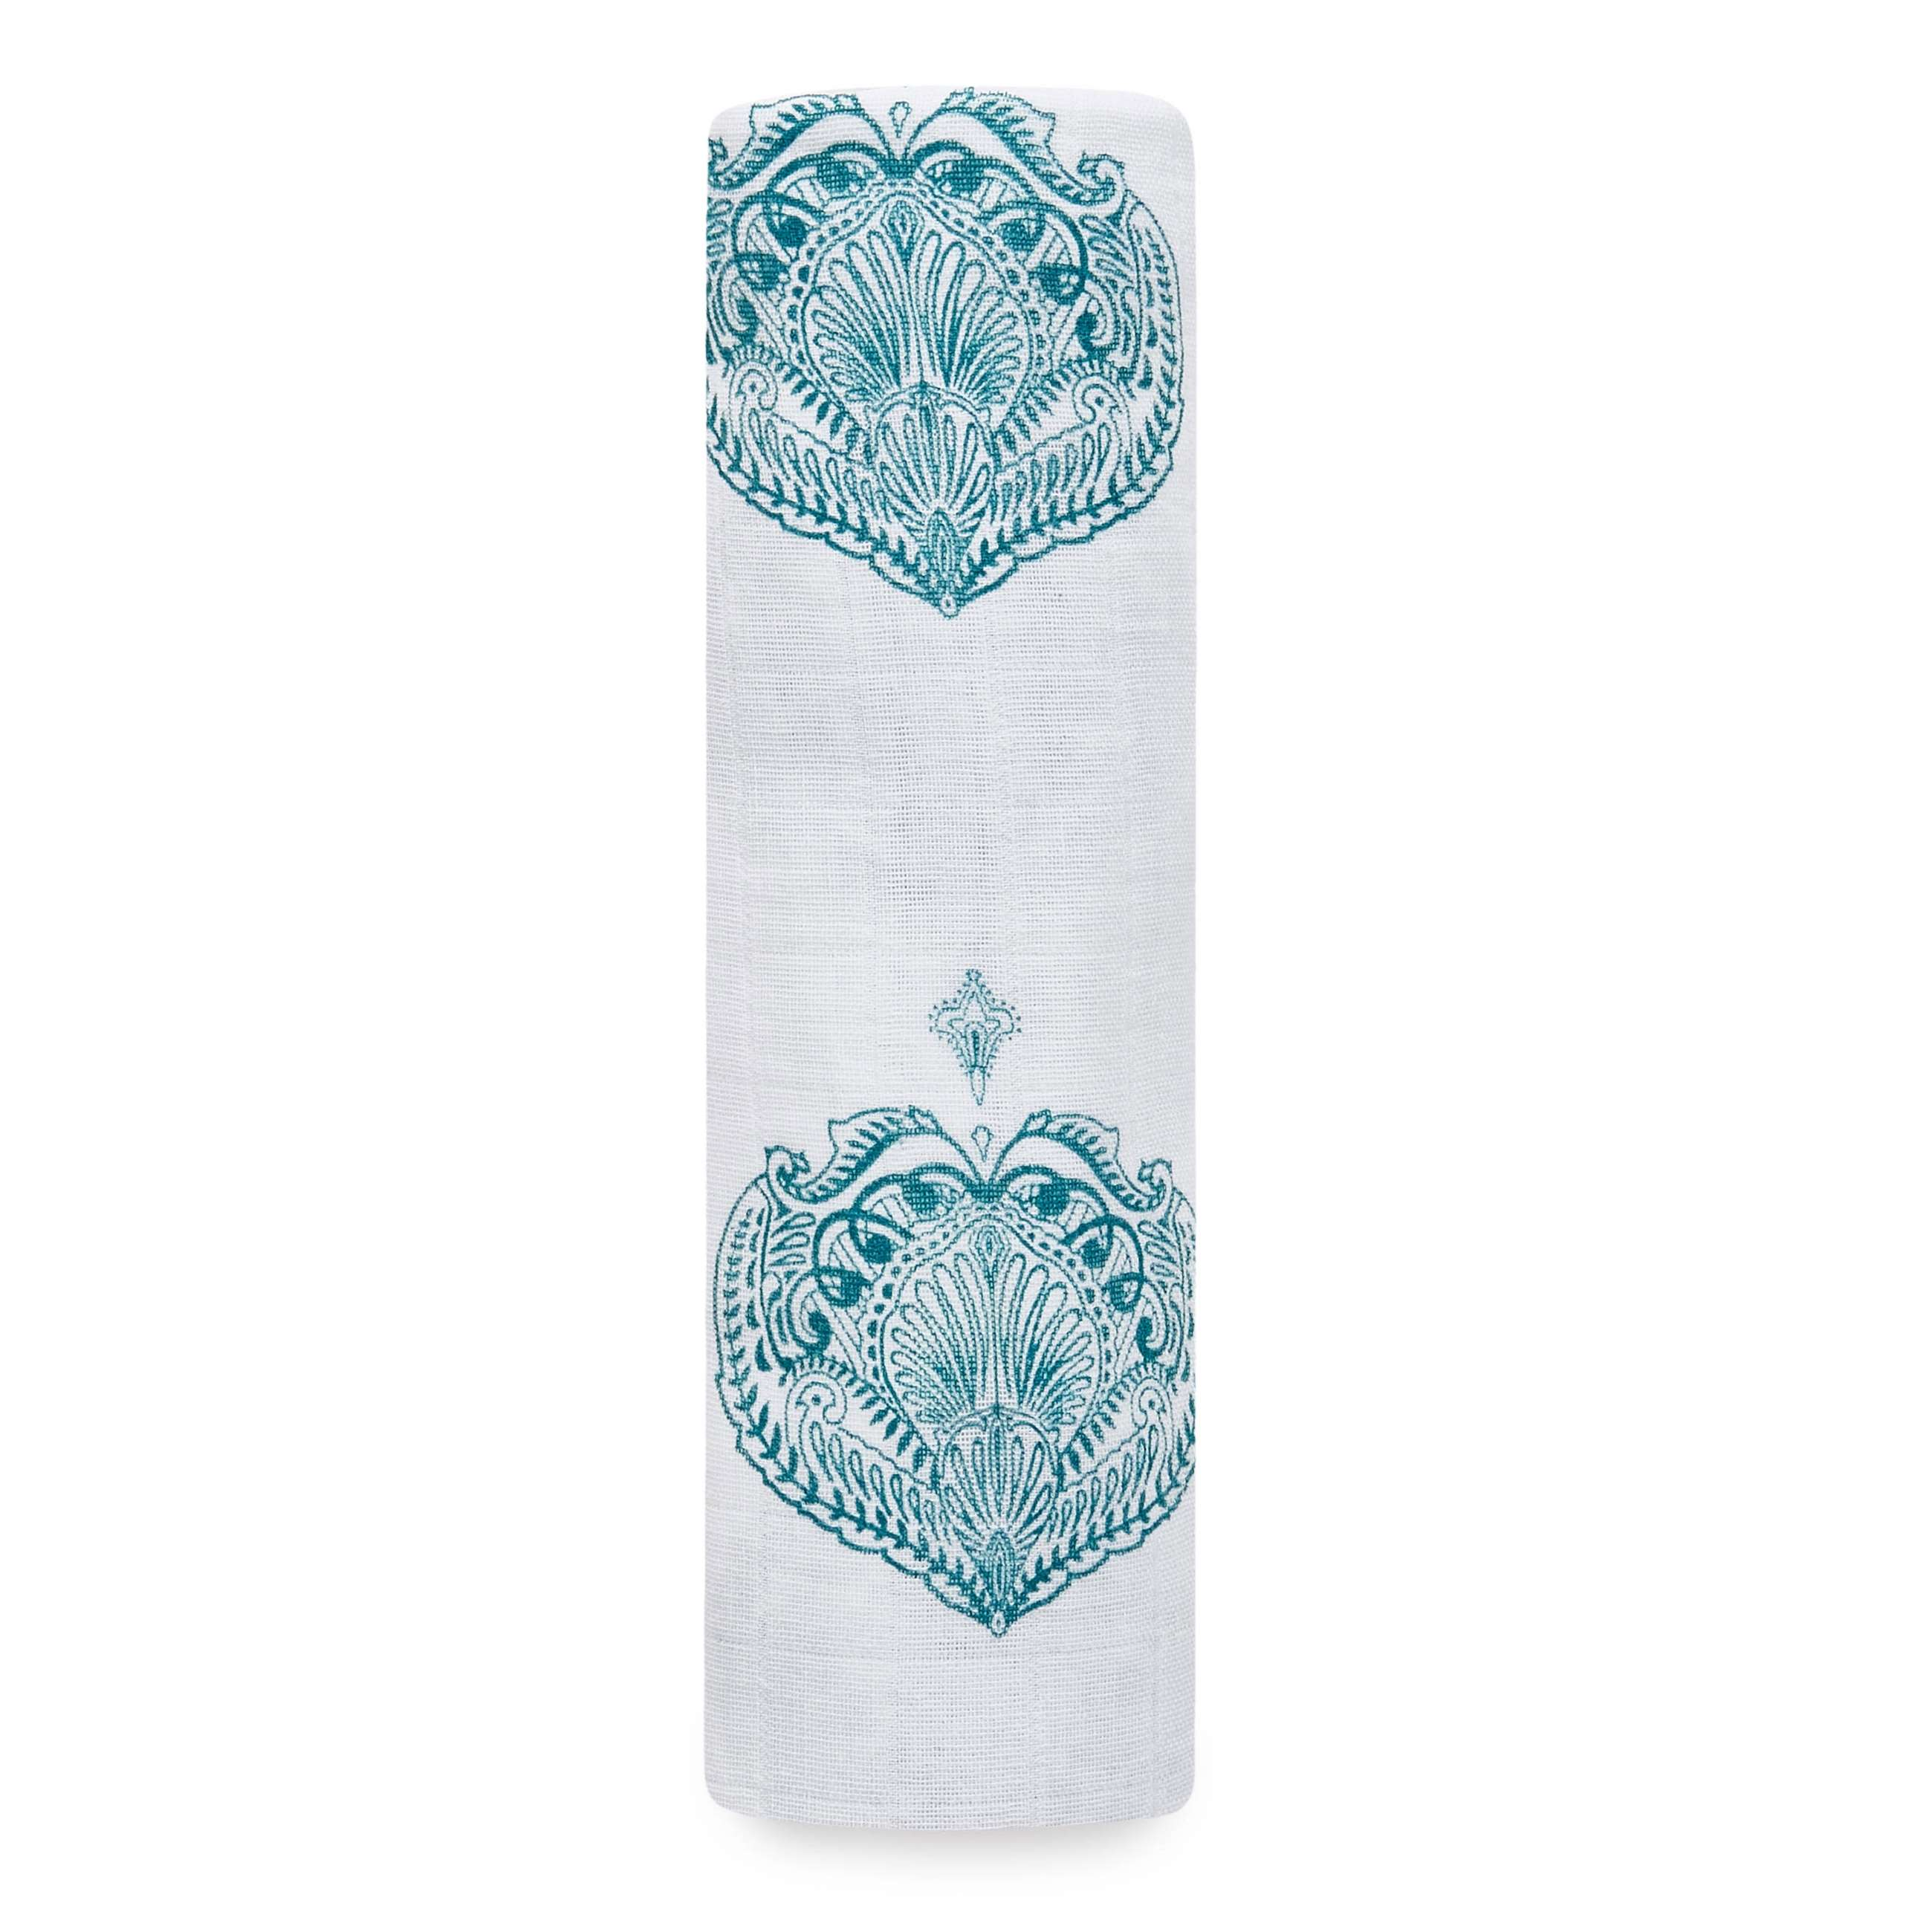 8996_0-classic-swaddle-single-paisley-teal-paisley-drop